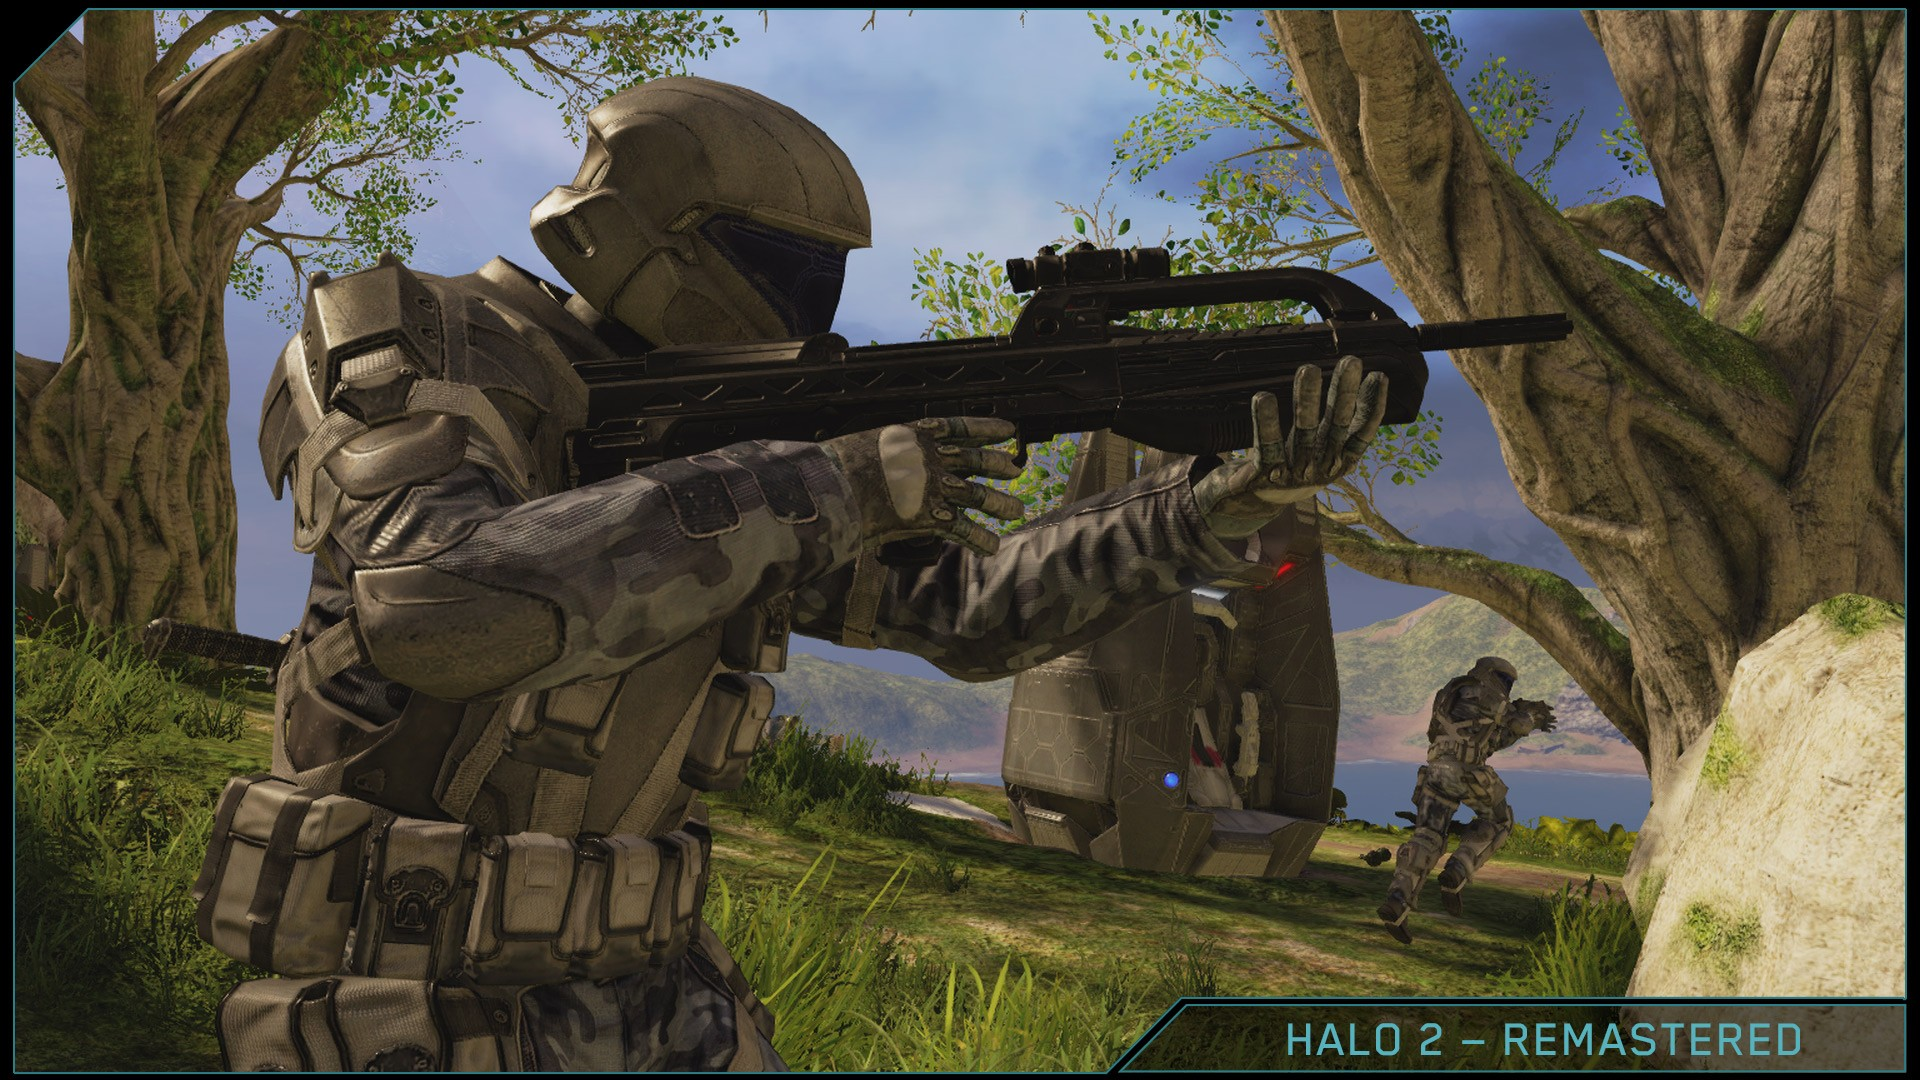 Halo 2 Anniversary Campaign Doesn't Run at 1080p on Xbox One